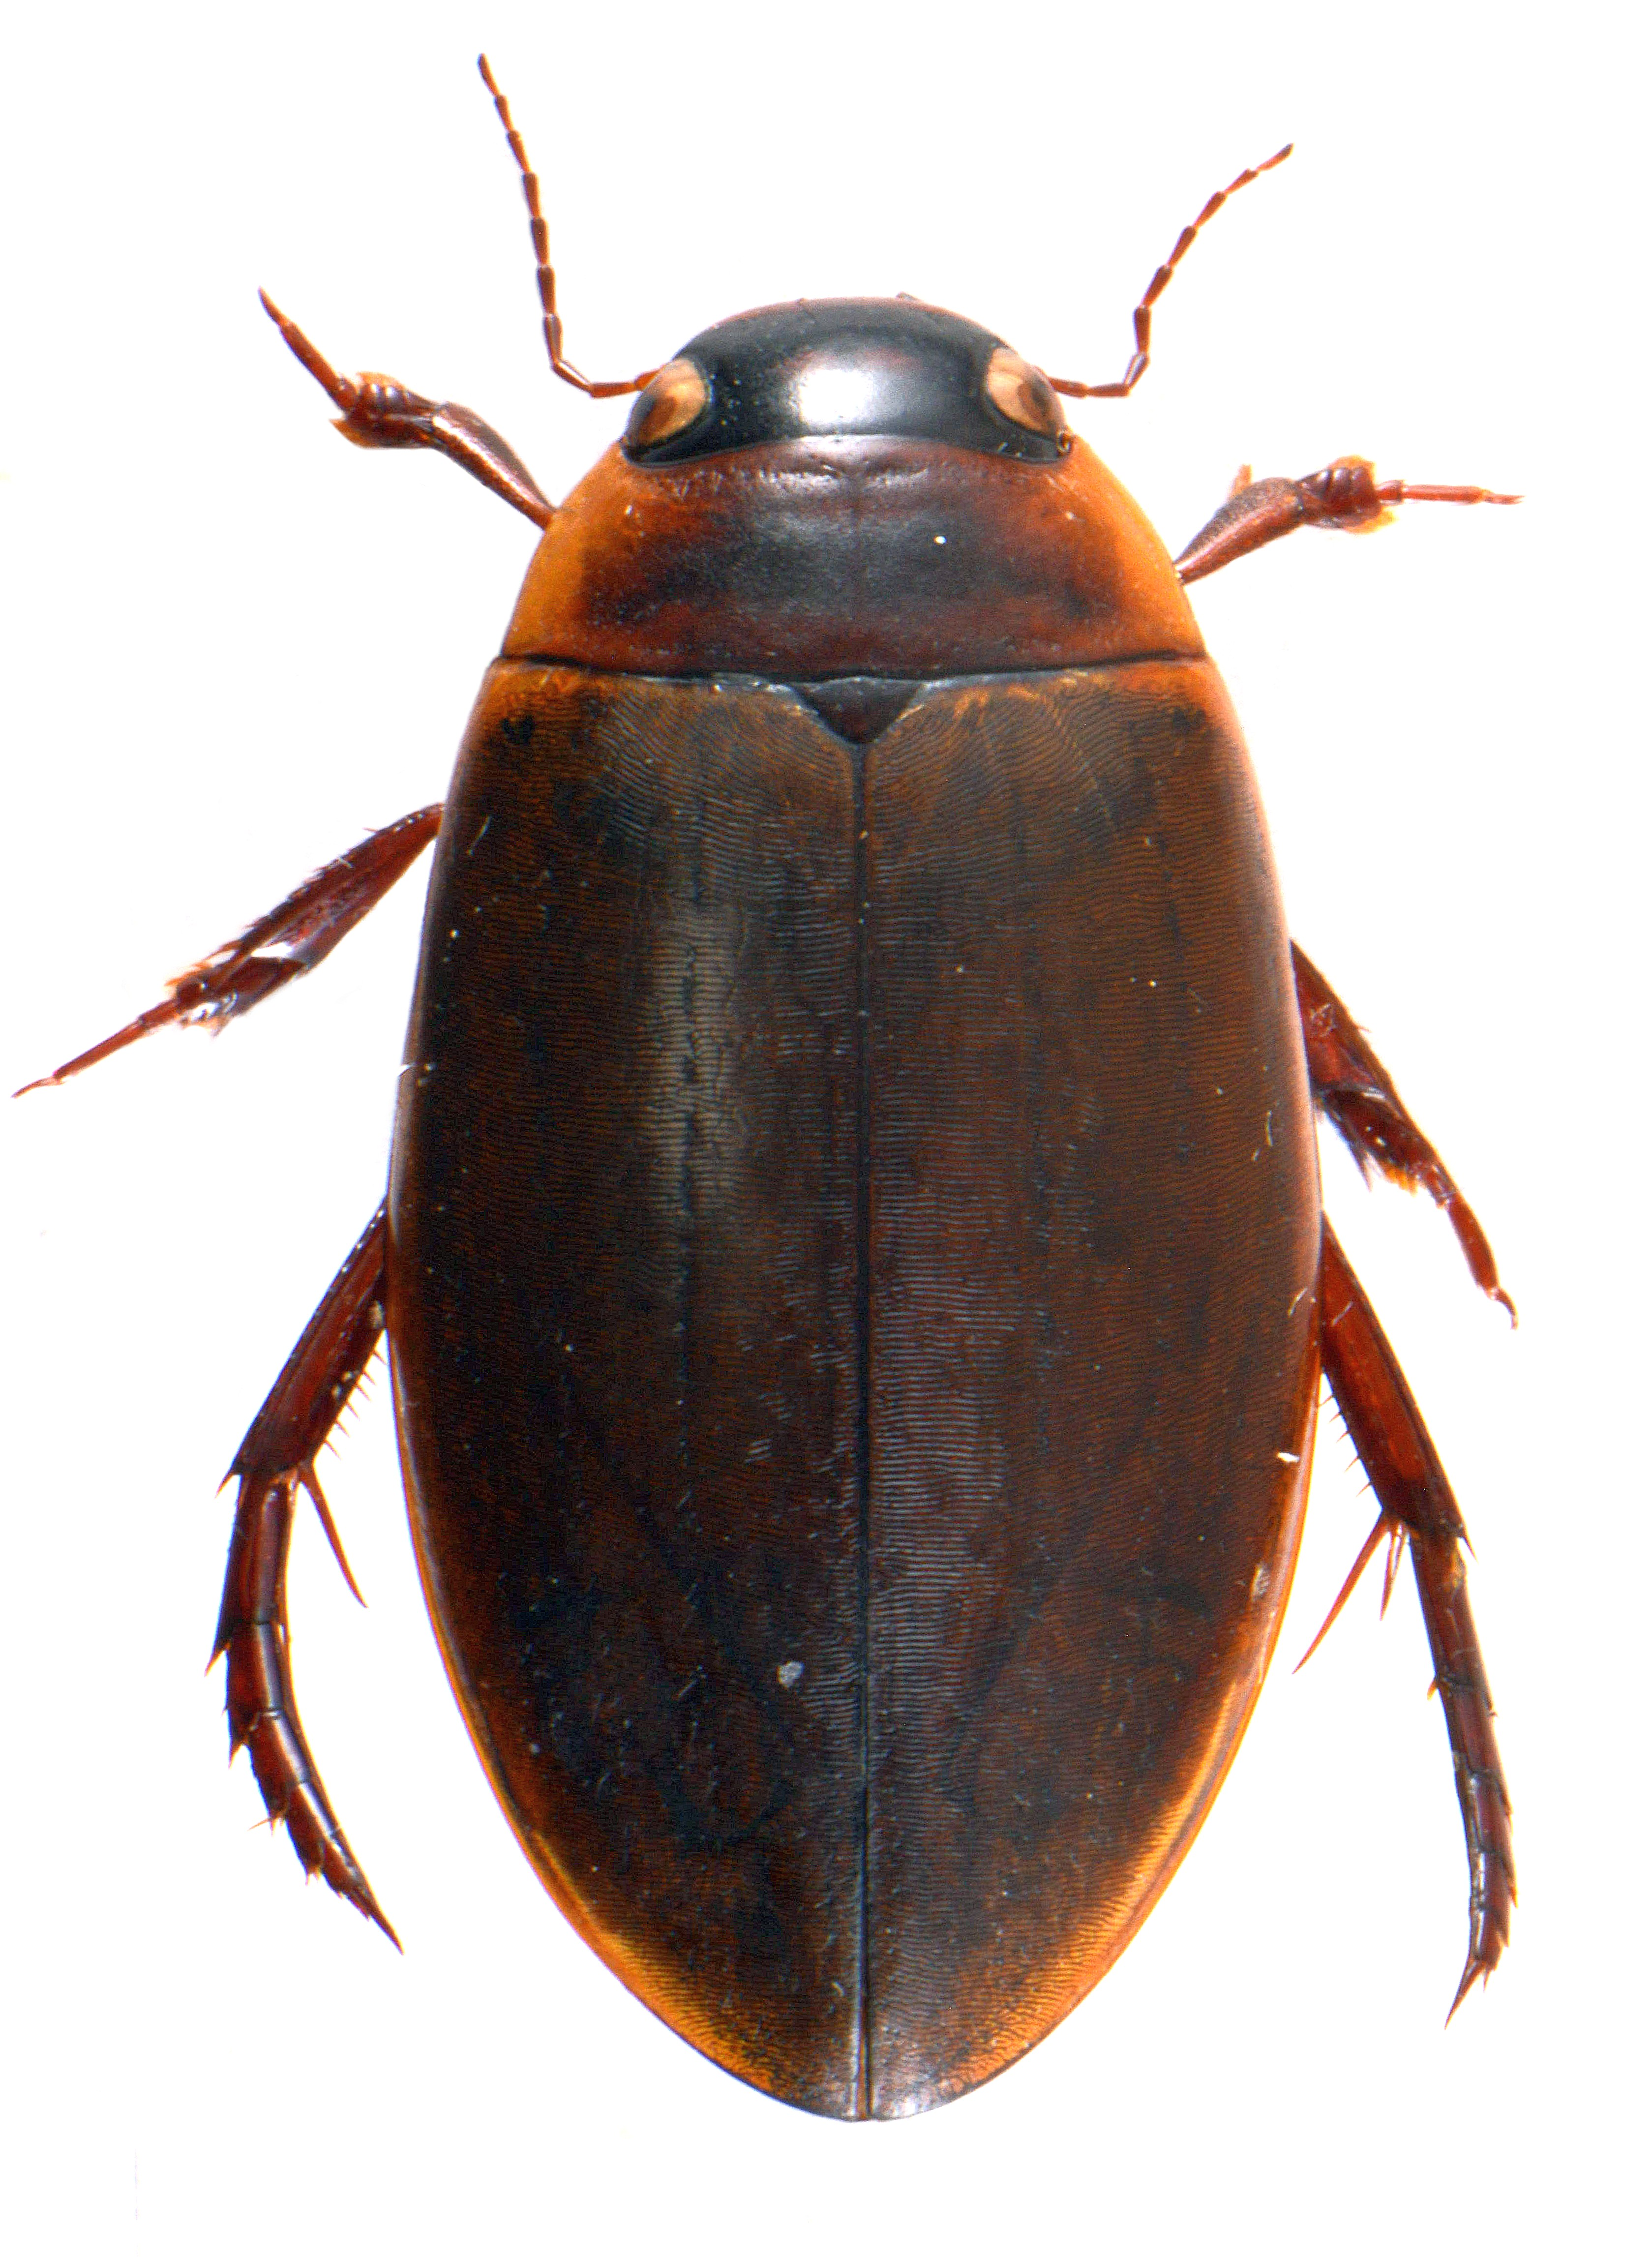 Colymbetes fuscus